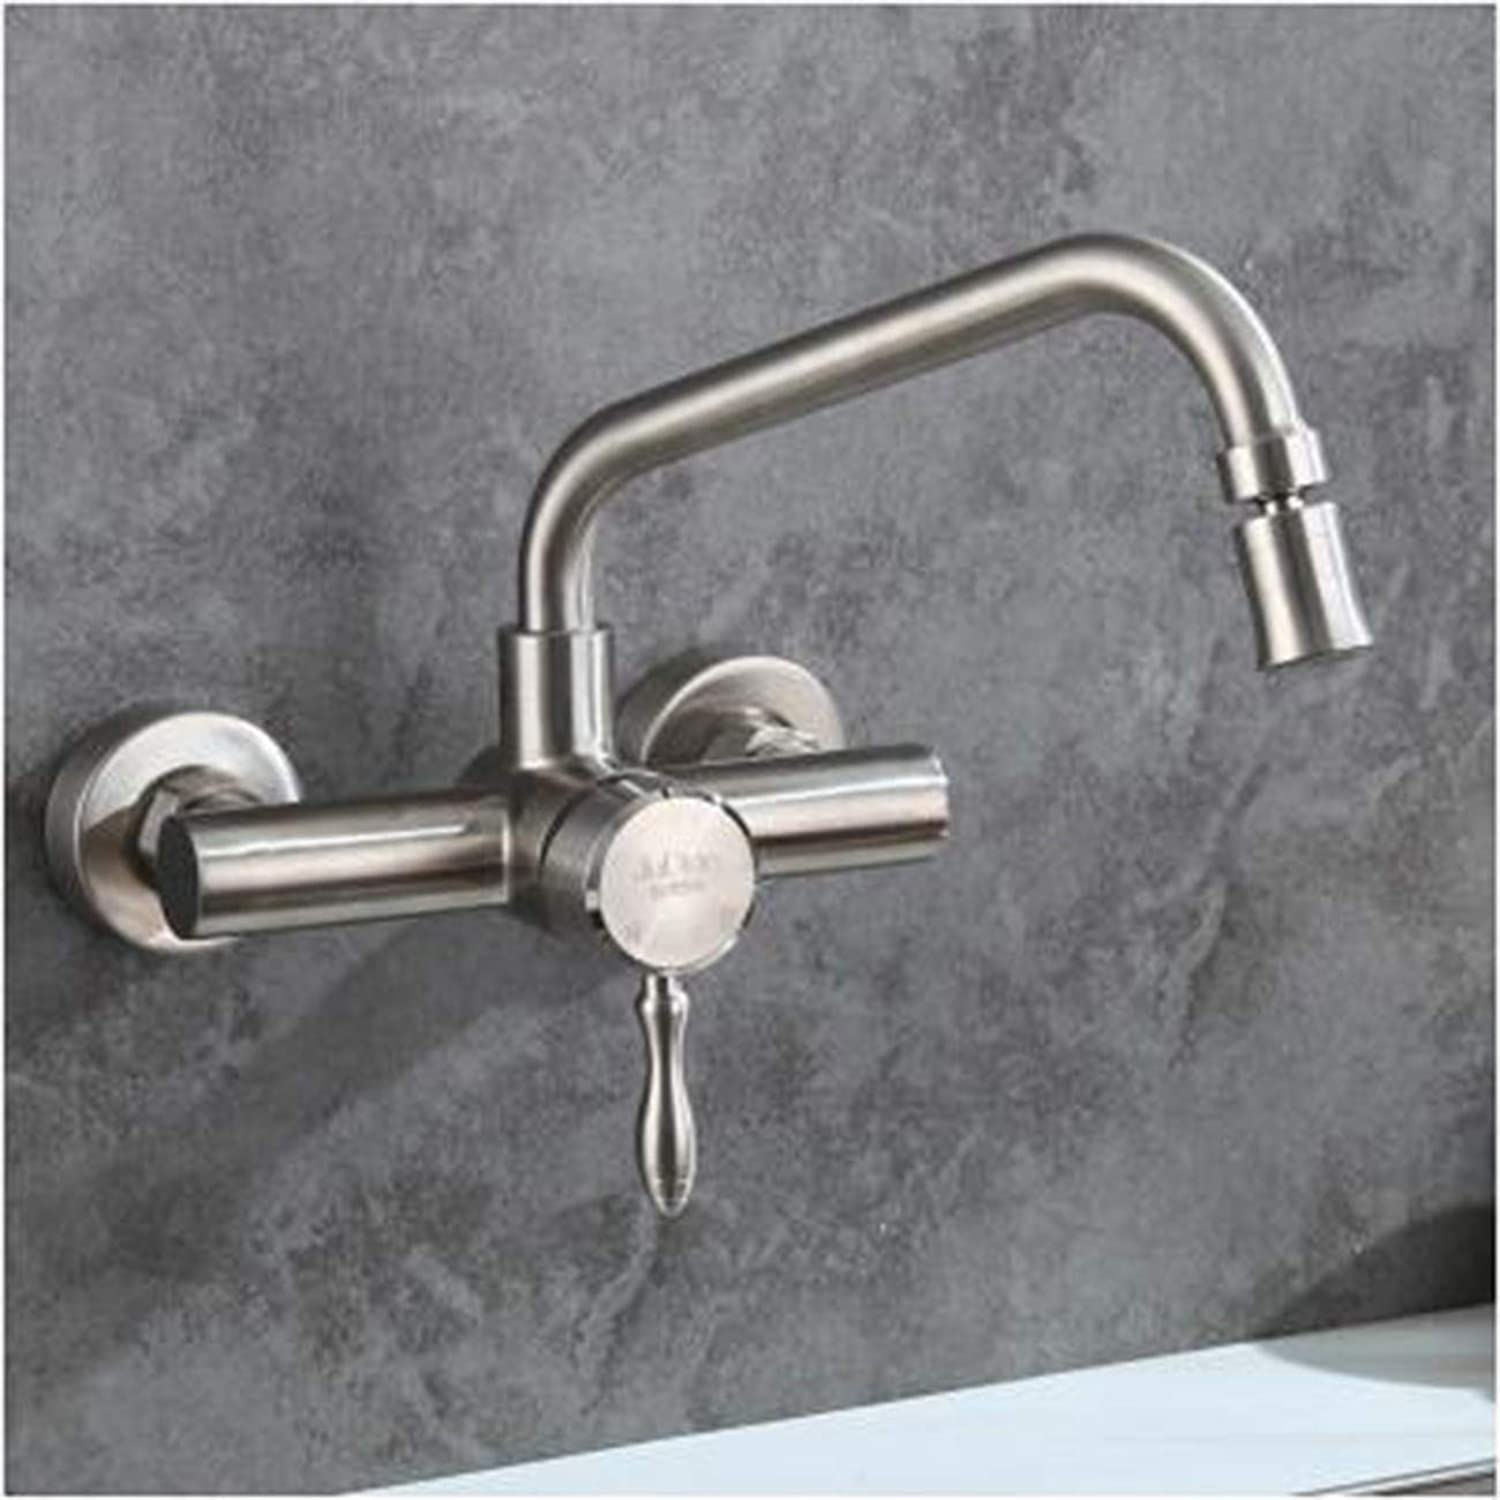 XPYFaucet Faucet Tap Taps In-wall hot and cold 304 stainless steel kitchen sink mop pool balcony shower laundry pool sink, D